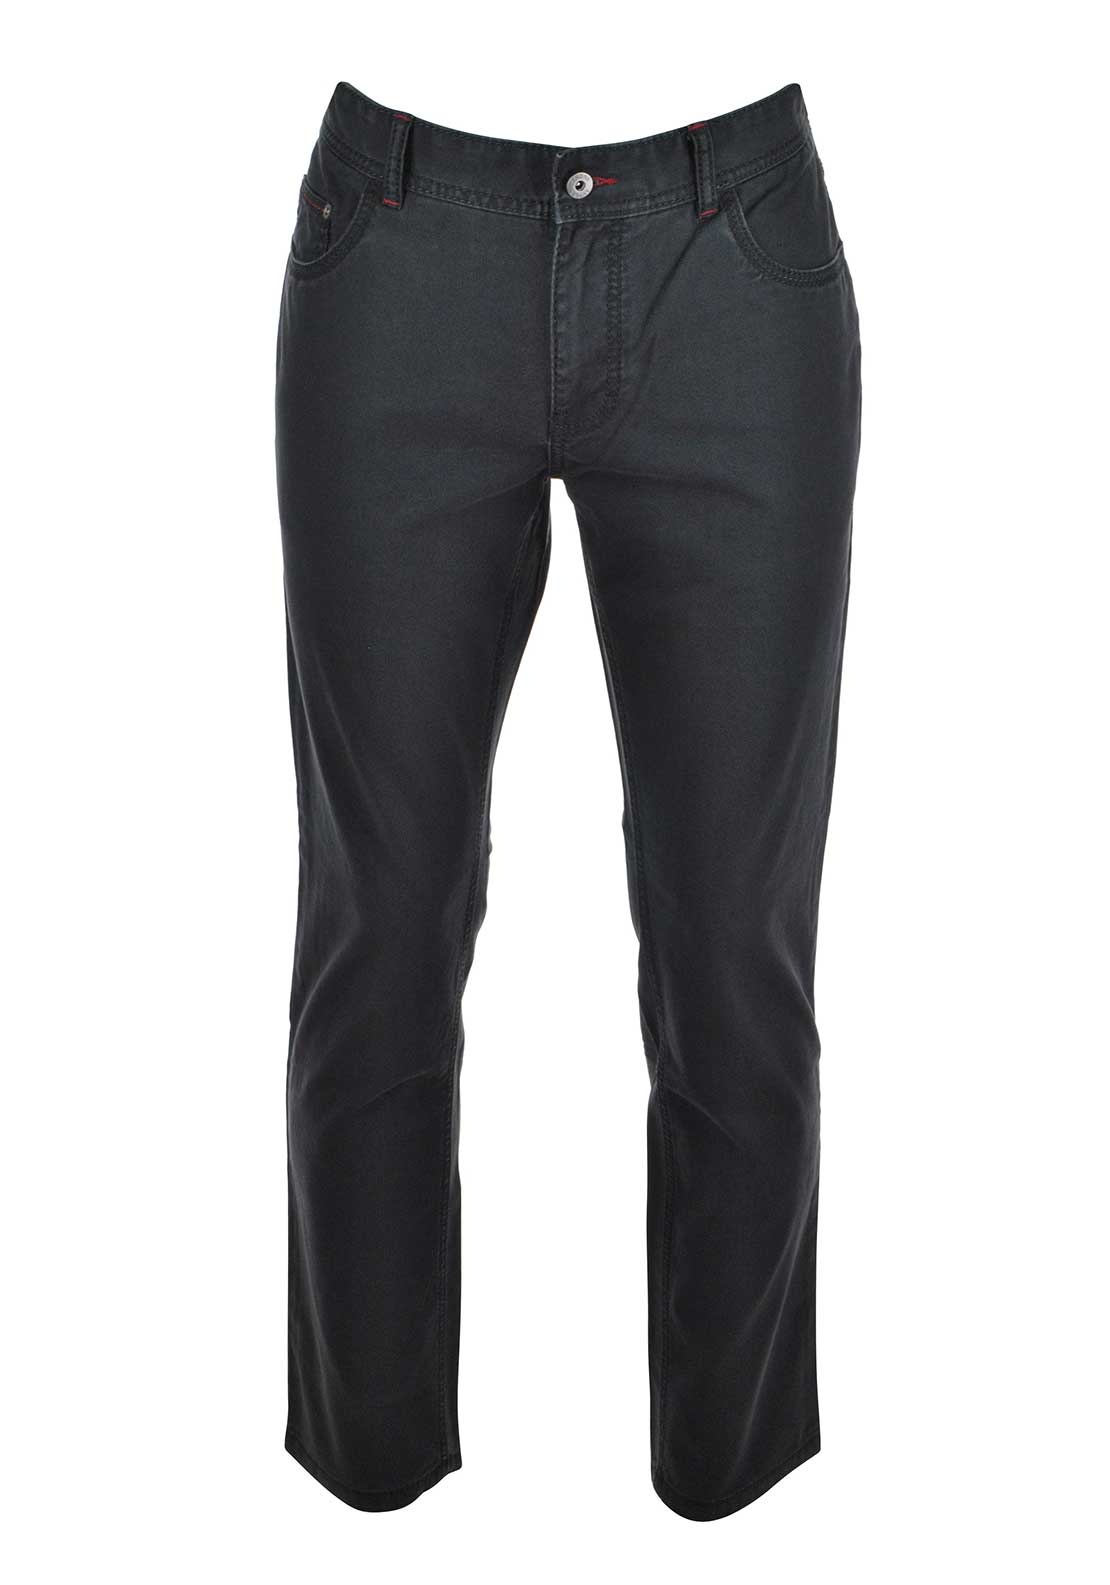 Andre Sterling Comfort Fit Jeans, Lead